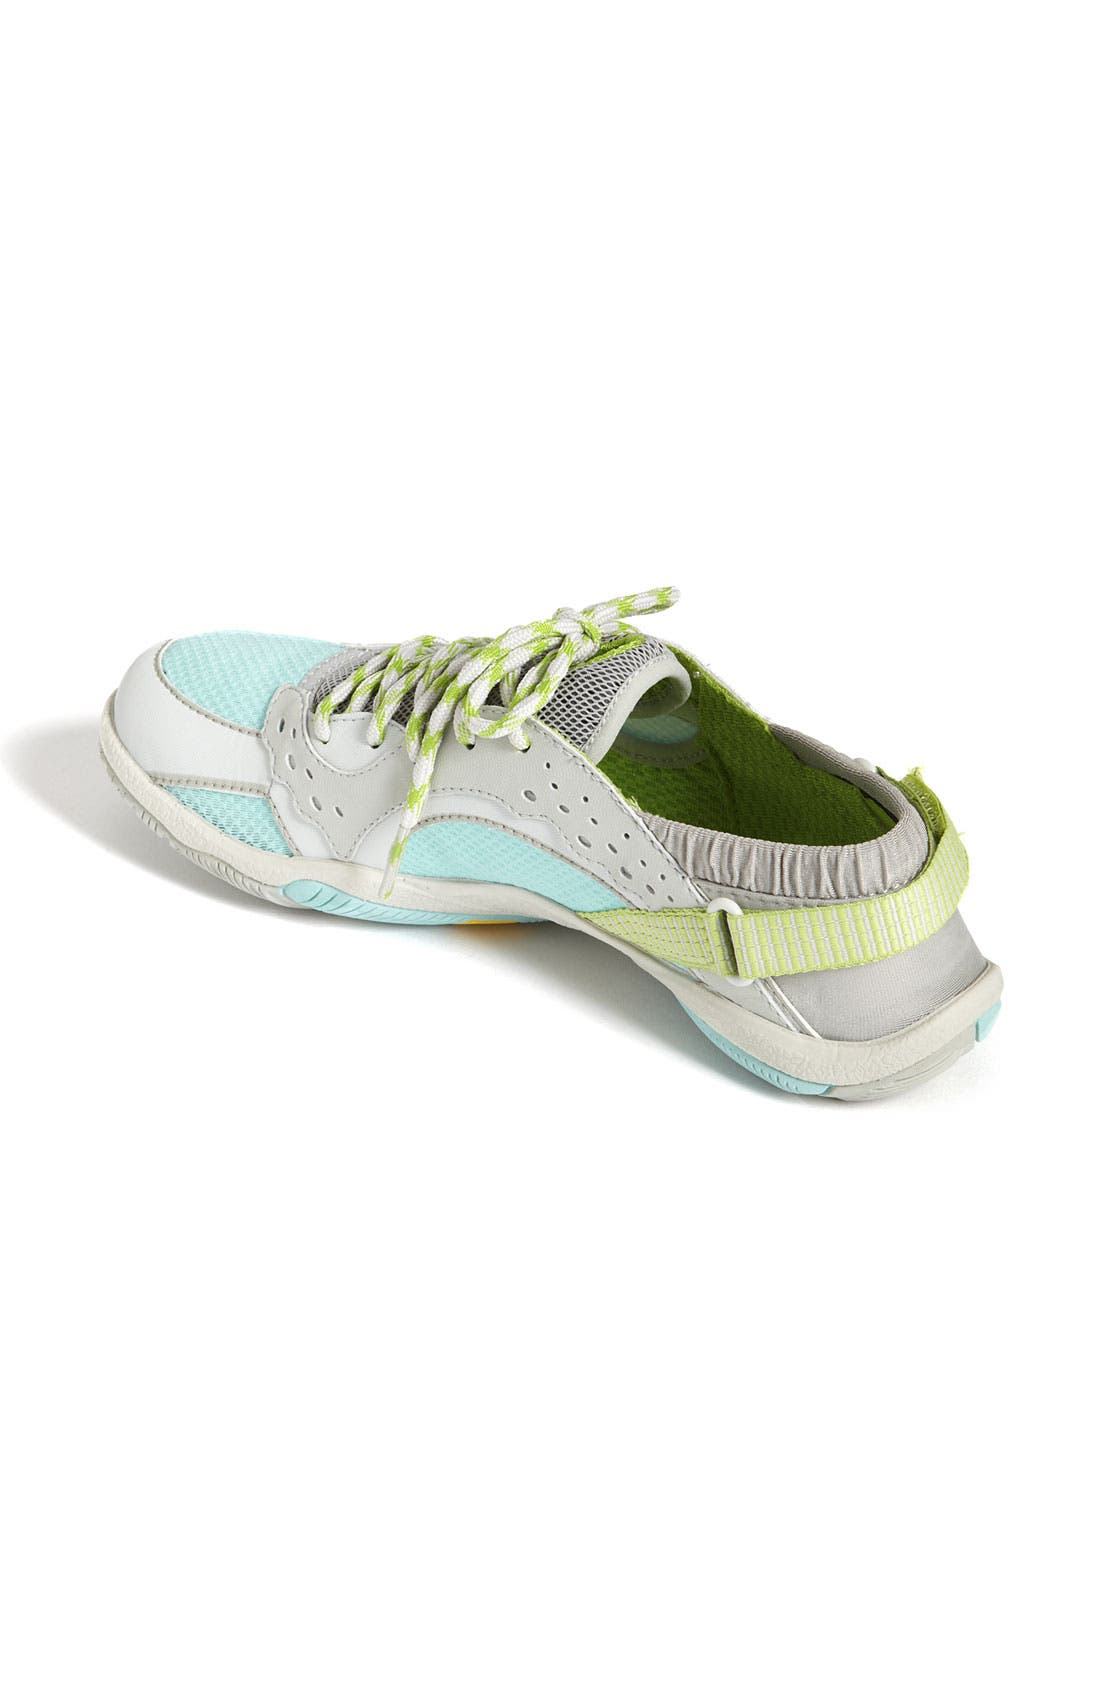 Alternate Image 2  - Merrell 'Swift Glove' Water Shoe (Women)